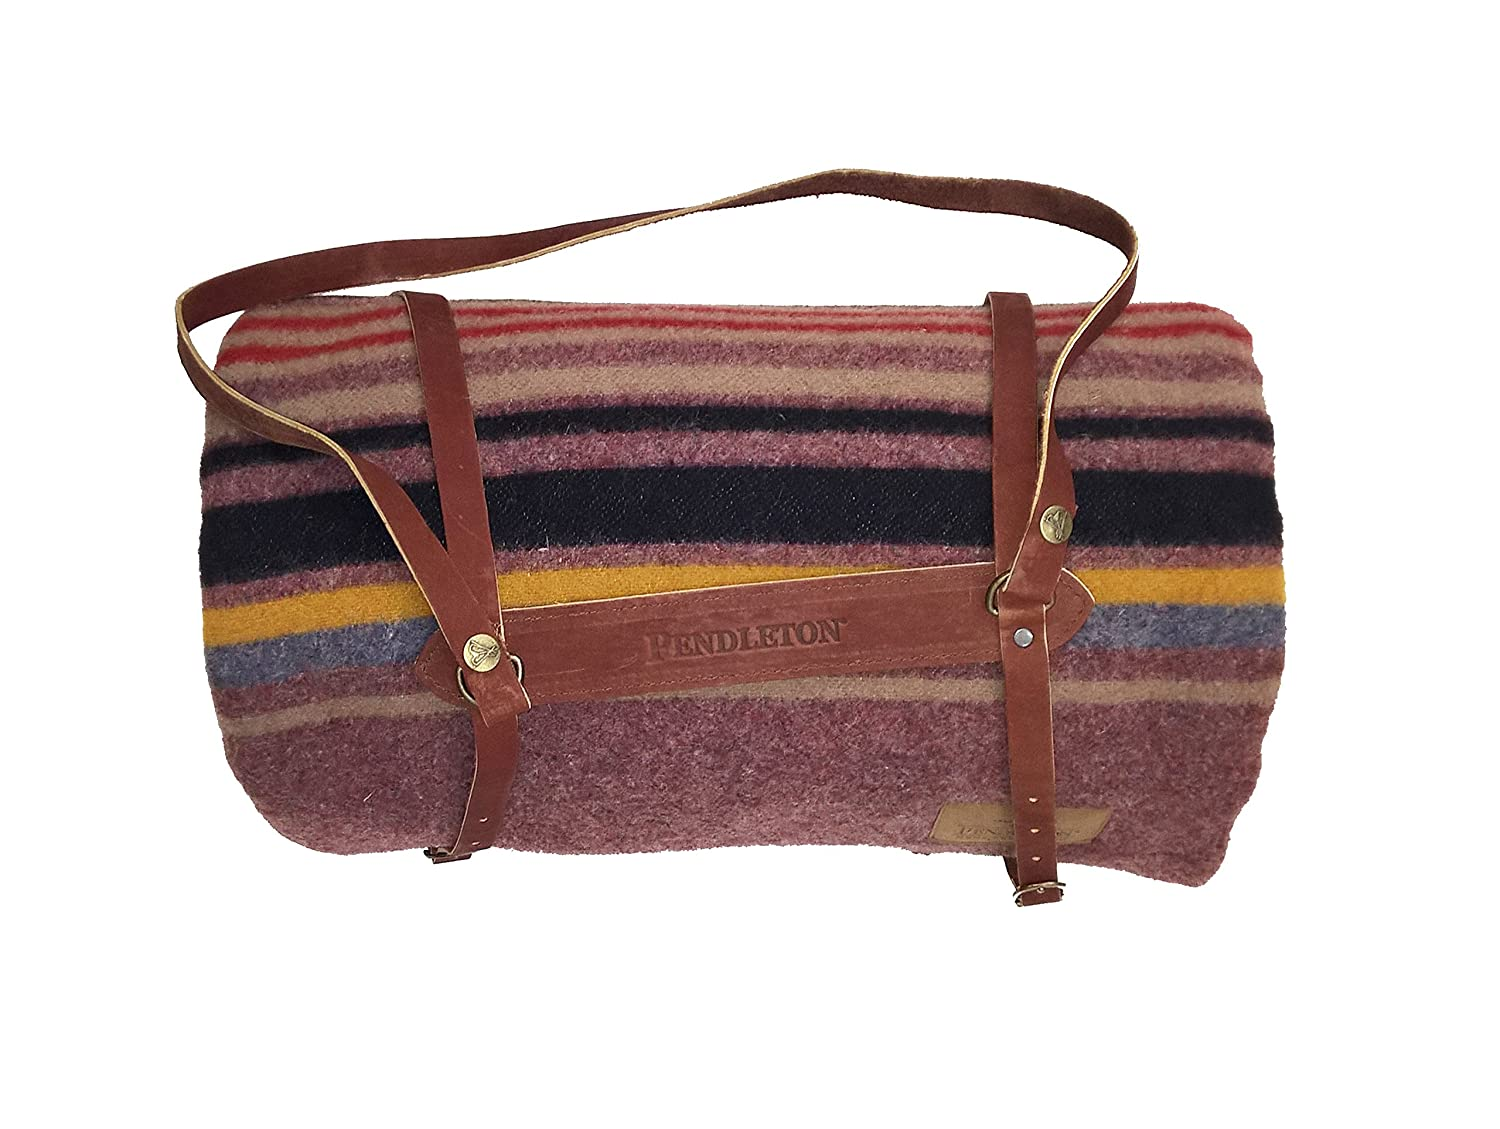 Pendleton Twin Wool Camp Blanket with Leather Carrier - Red Mountain Pendleton Woolen Mills